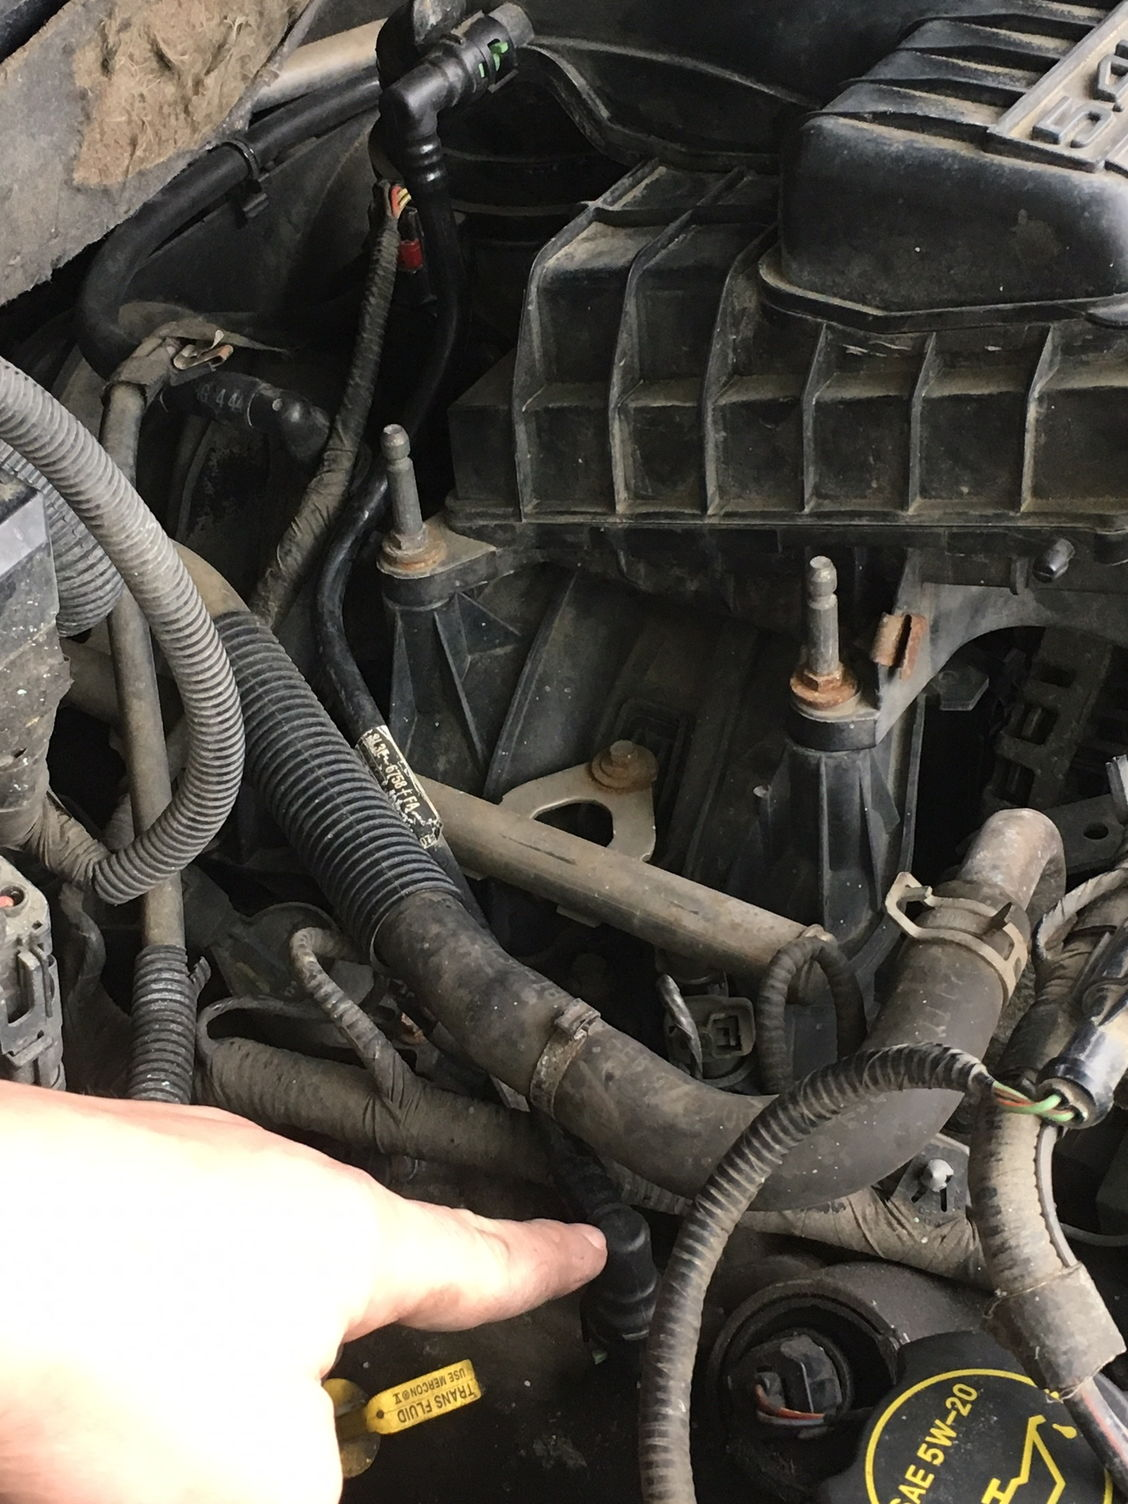 valve cover is supposed to have suction and it has none what could that mean could that have something to do with the rough running engine